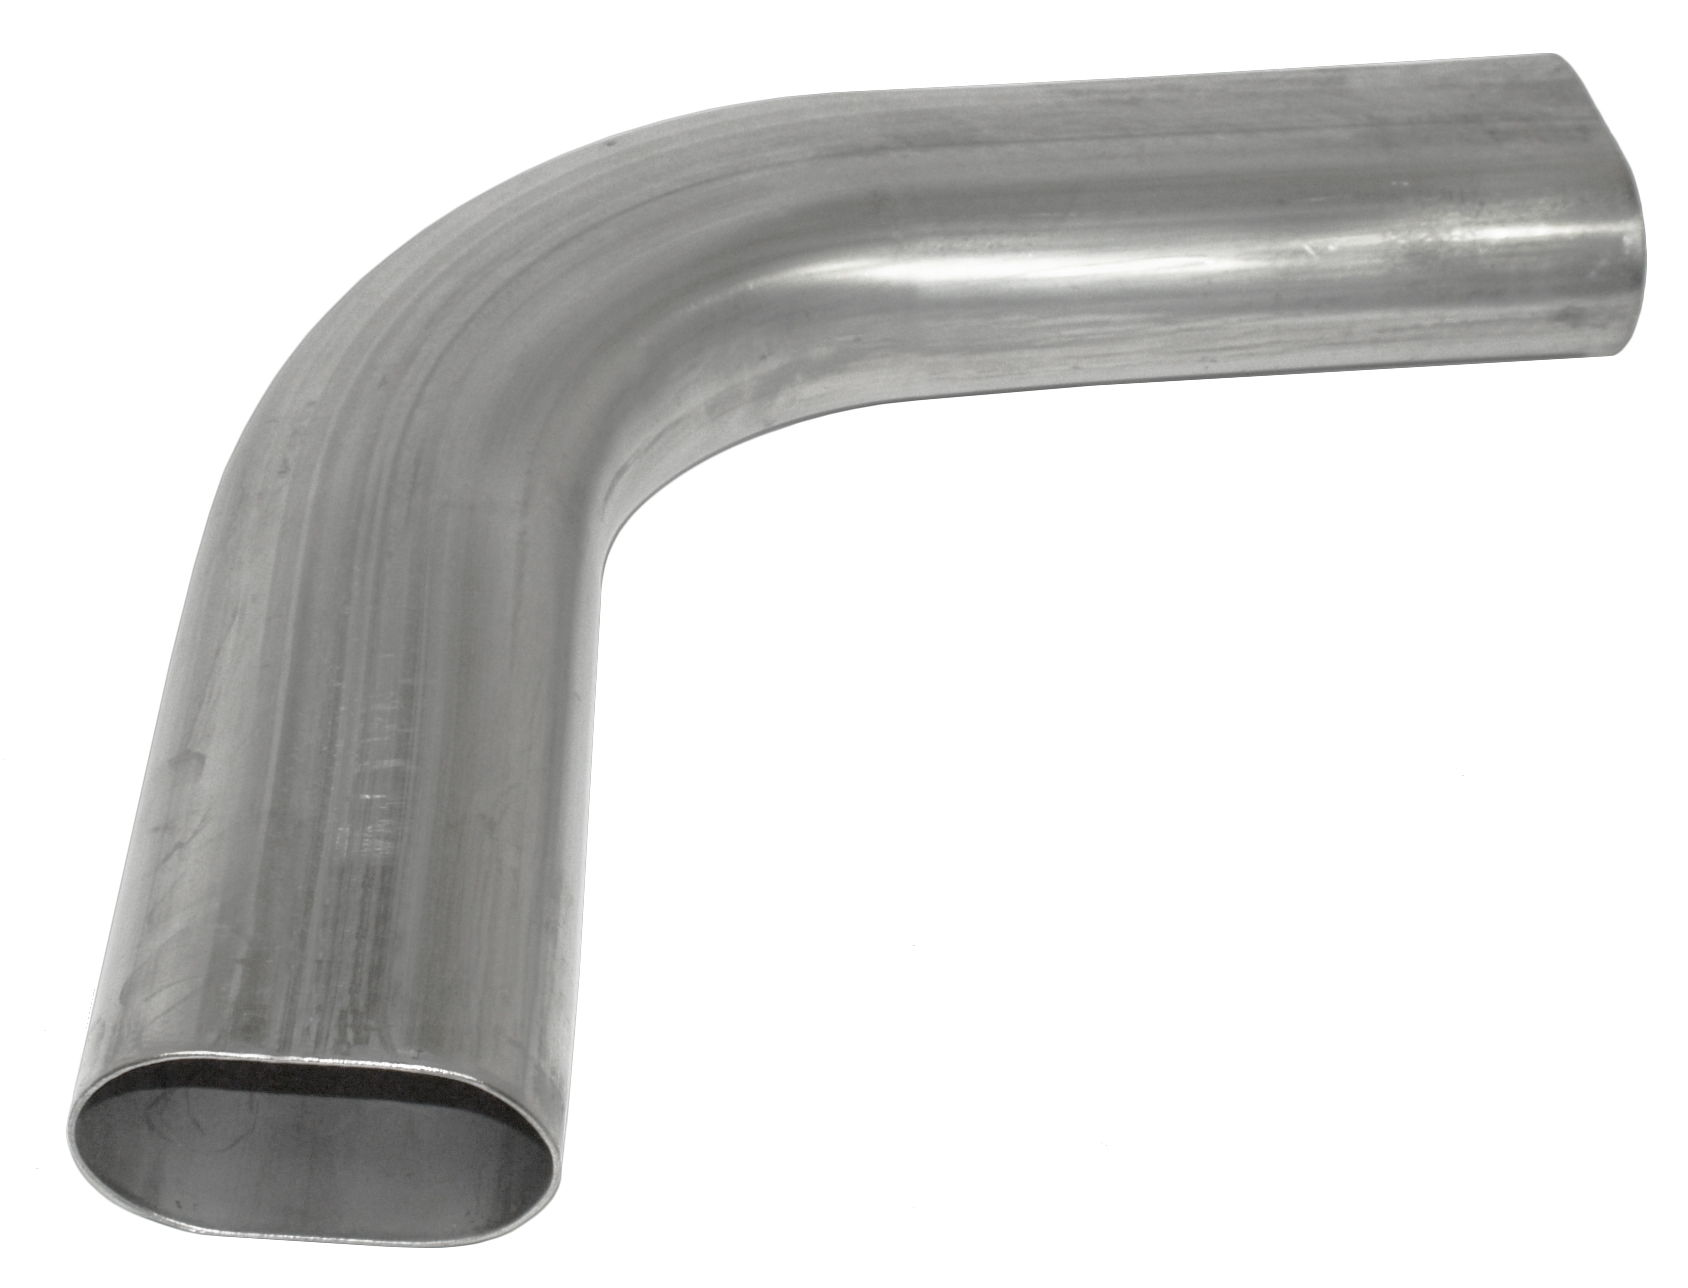 Oval Mandrel Bends